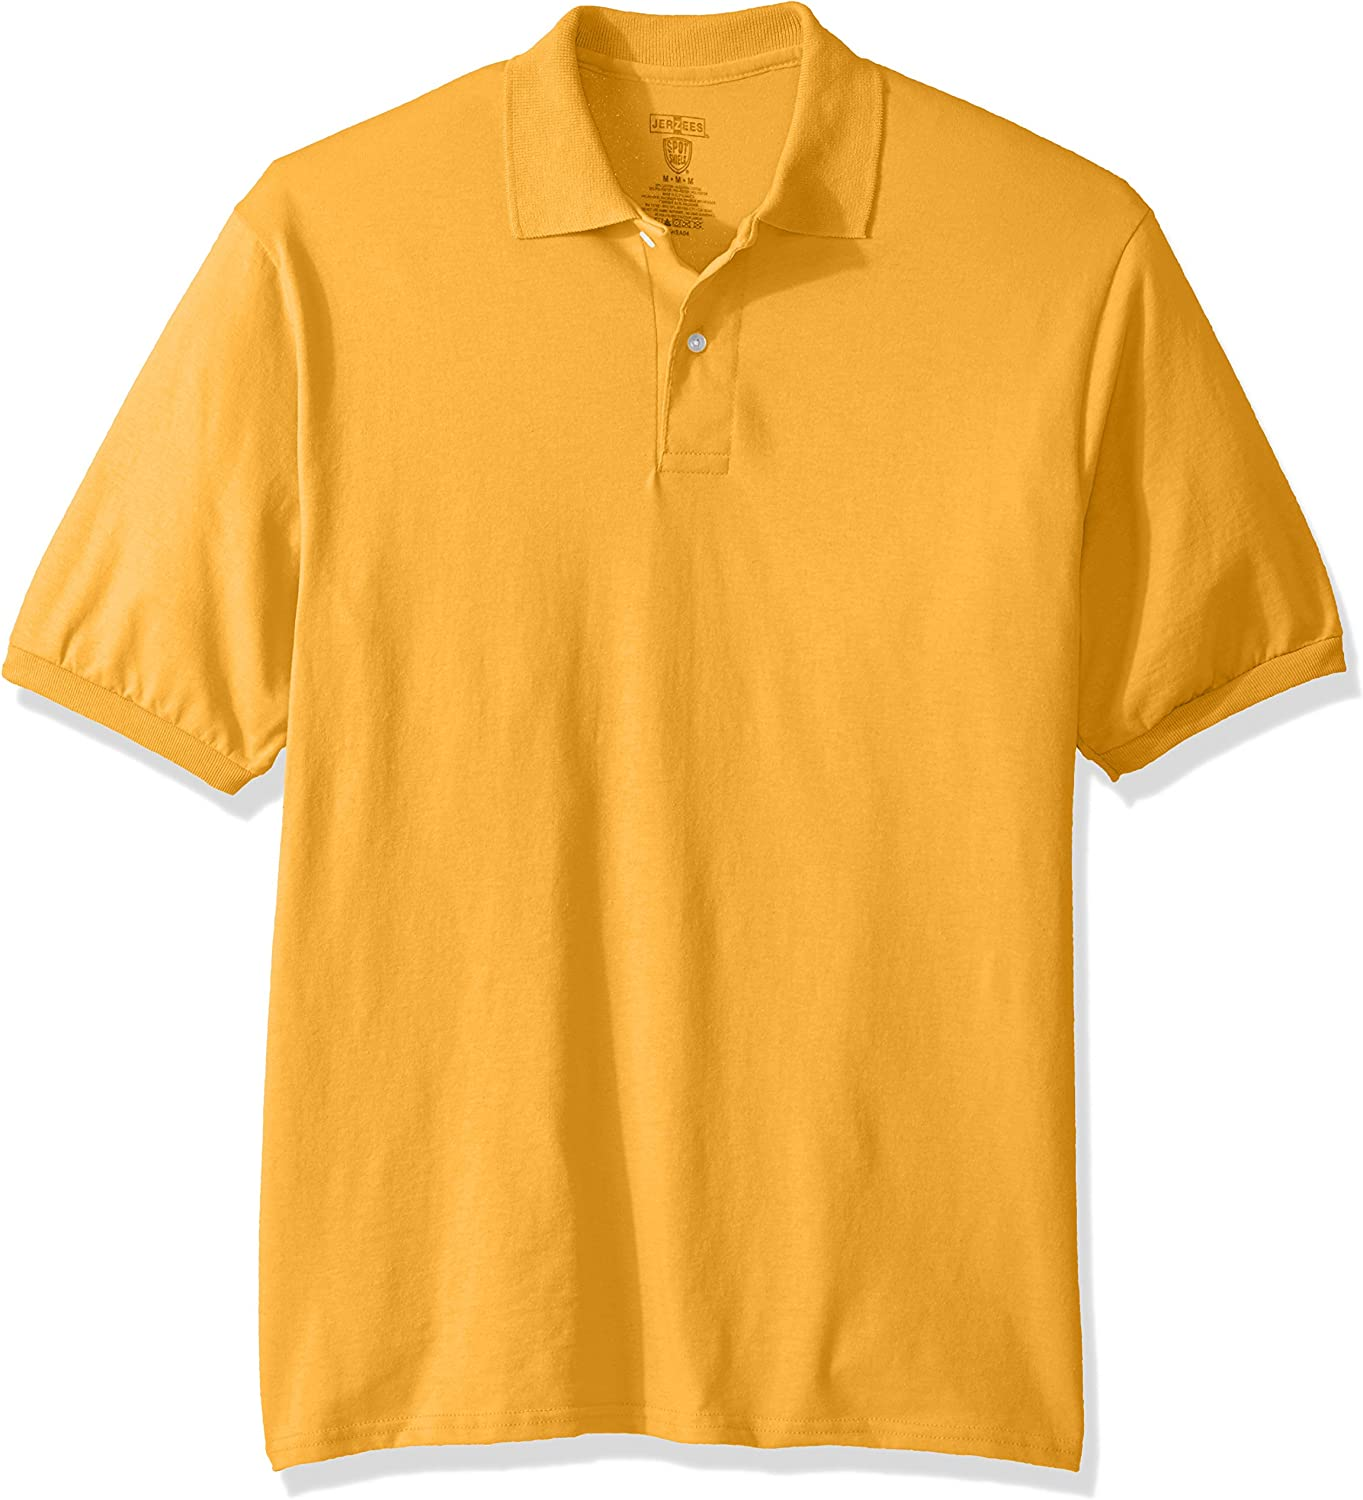 Jerzees Men's Max 58% OFF Spot Shield Short Sleeve 3 Sport Gold Shirt Polo Today's only